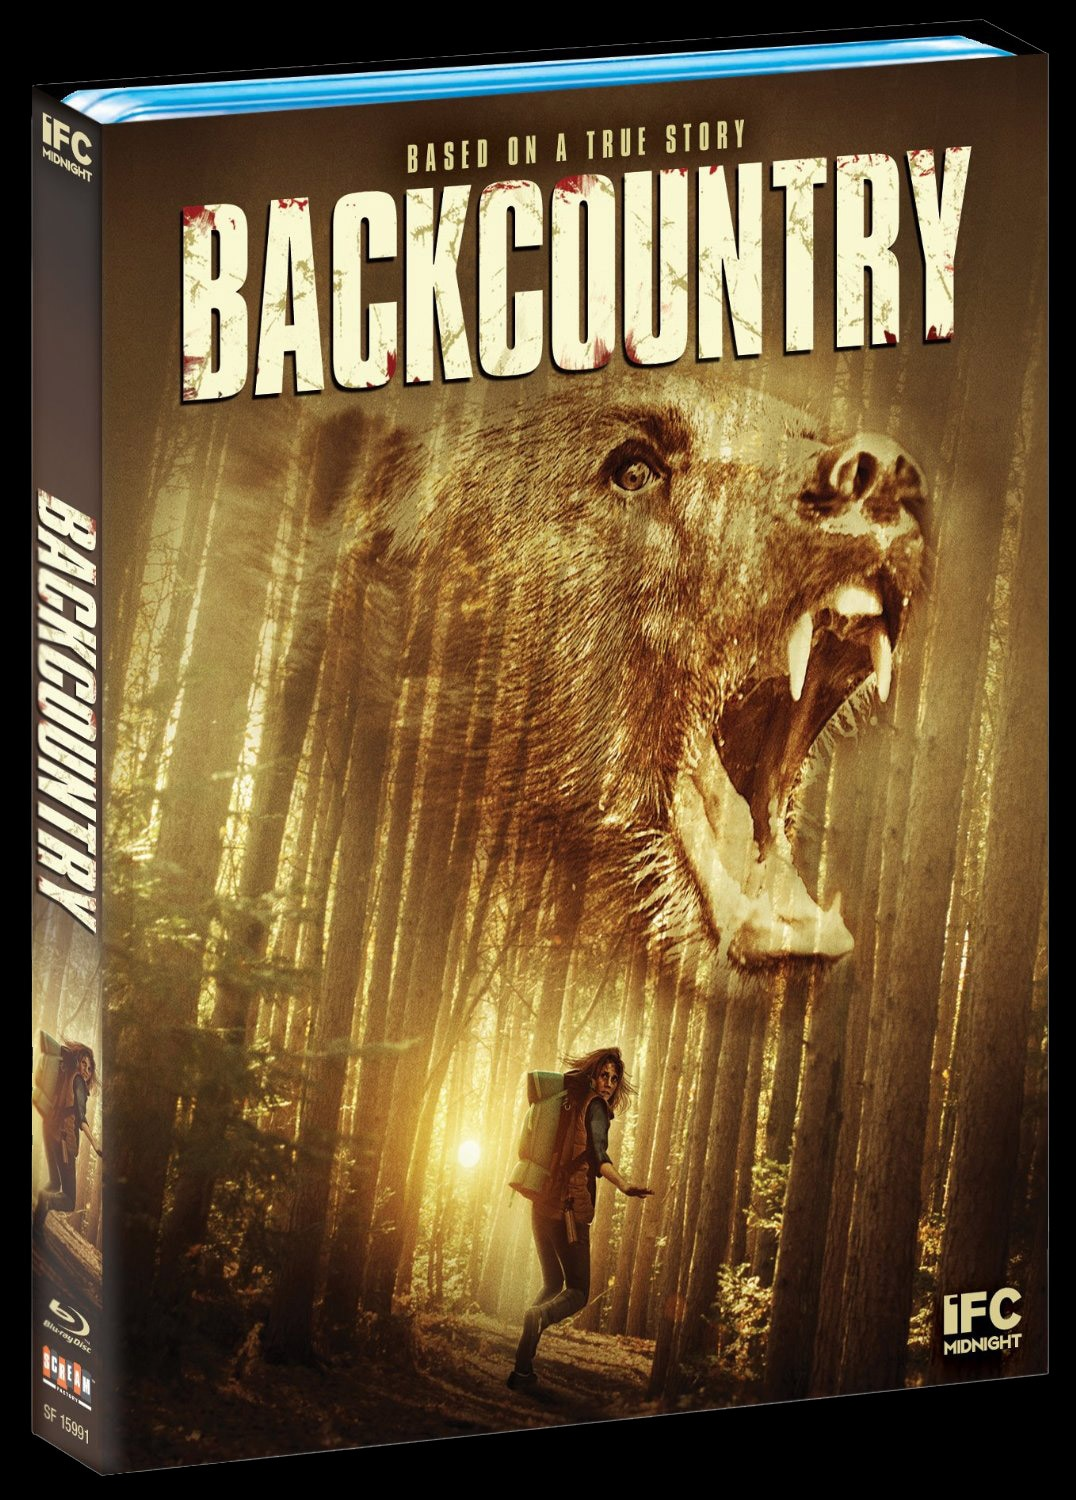 backcountry - Scream Factory and IFC Midnight Bring Home Backcountry and The Harvest